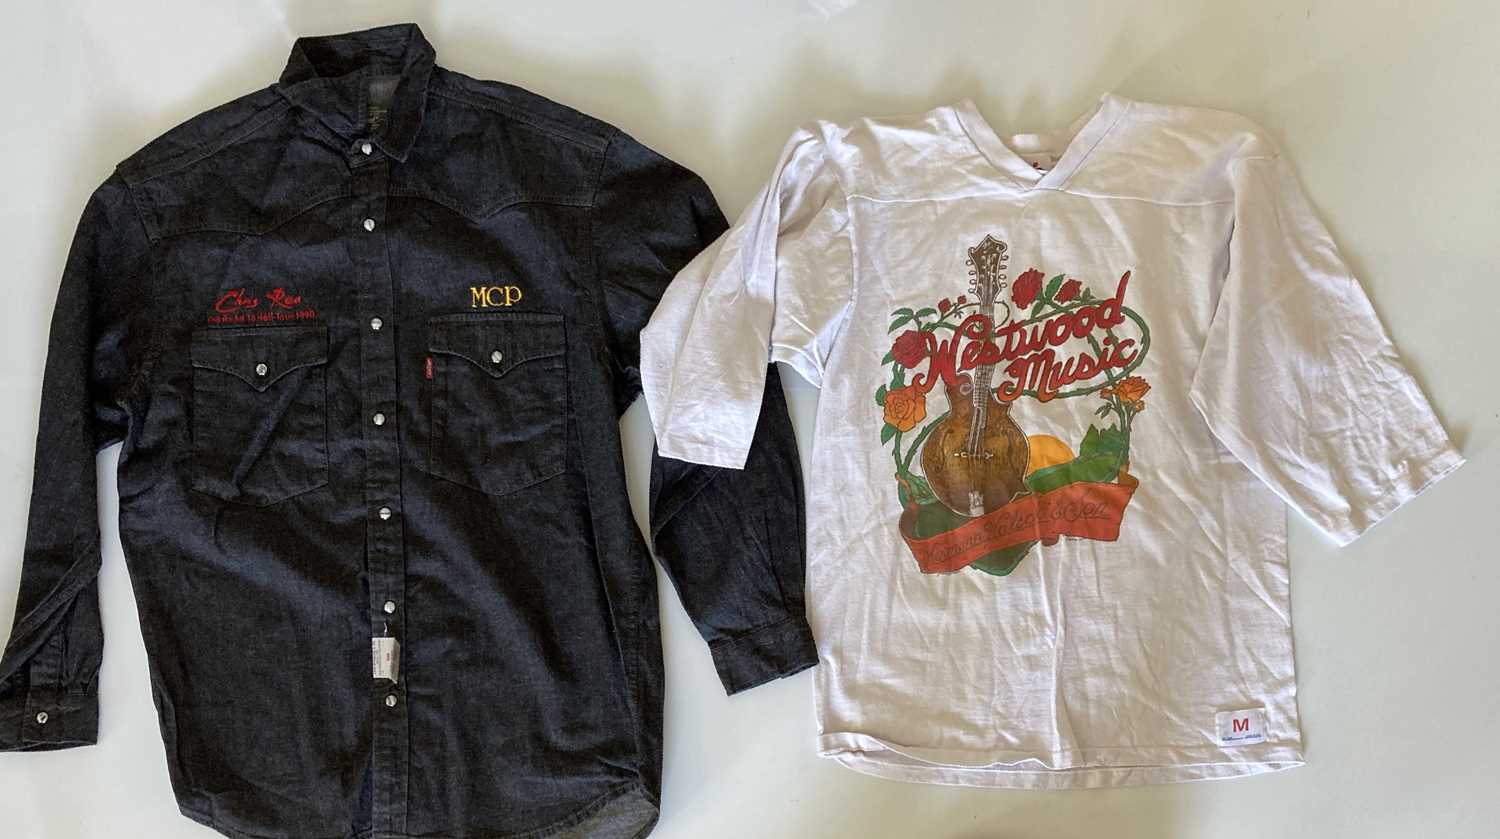 MUSIC CLOTHING - ONCE OWNED BY ANDY FAIRWEATHER LOW. - Image 4 of 5